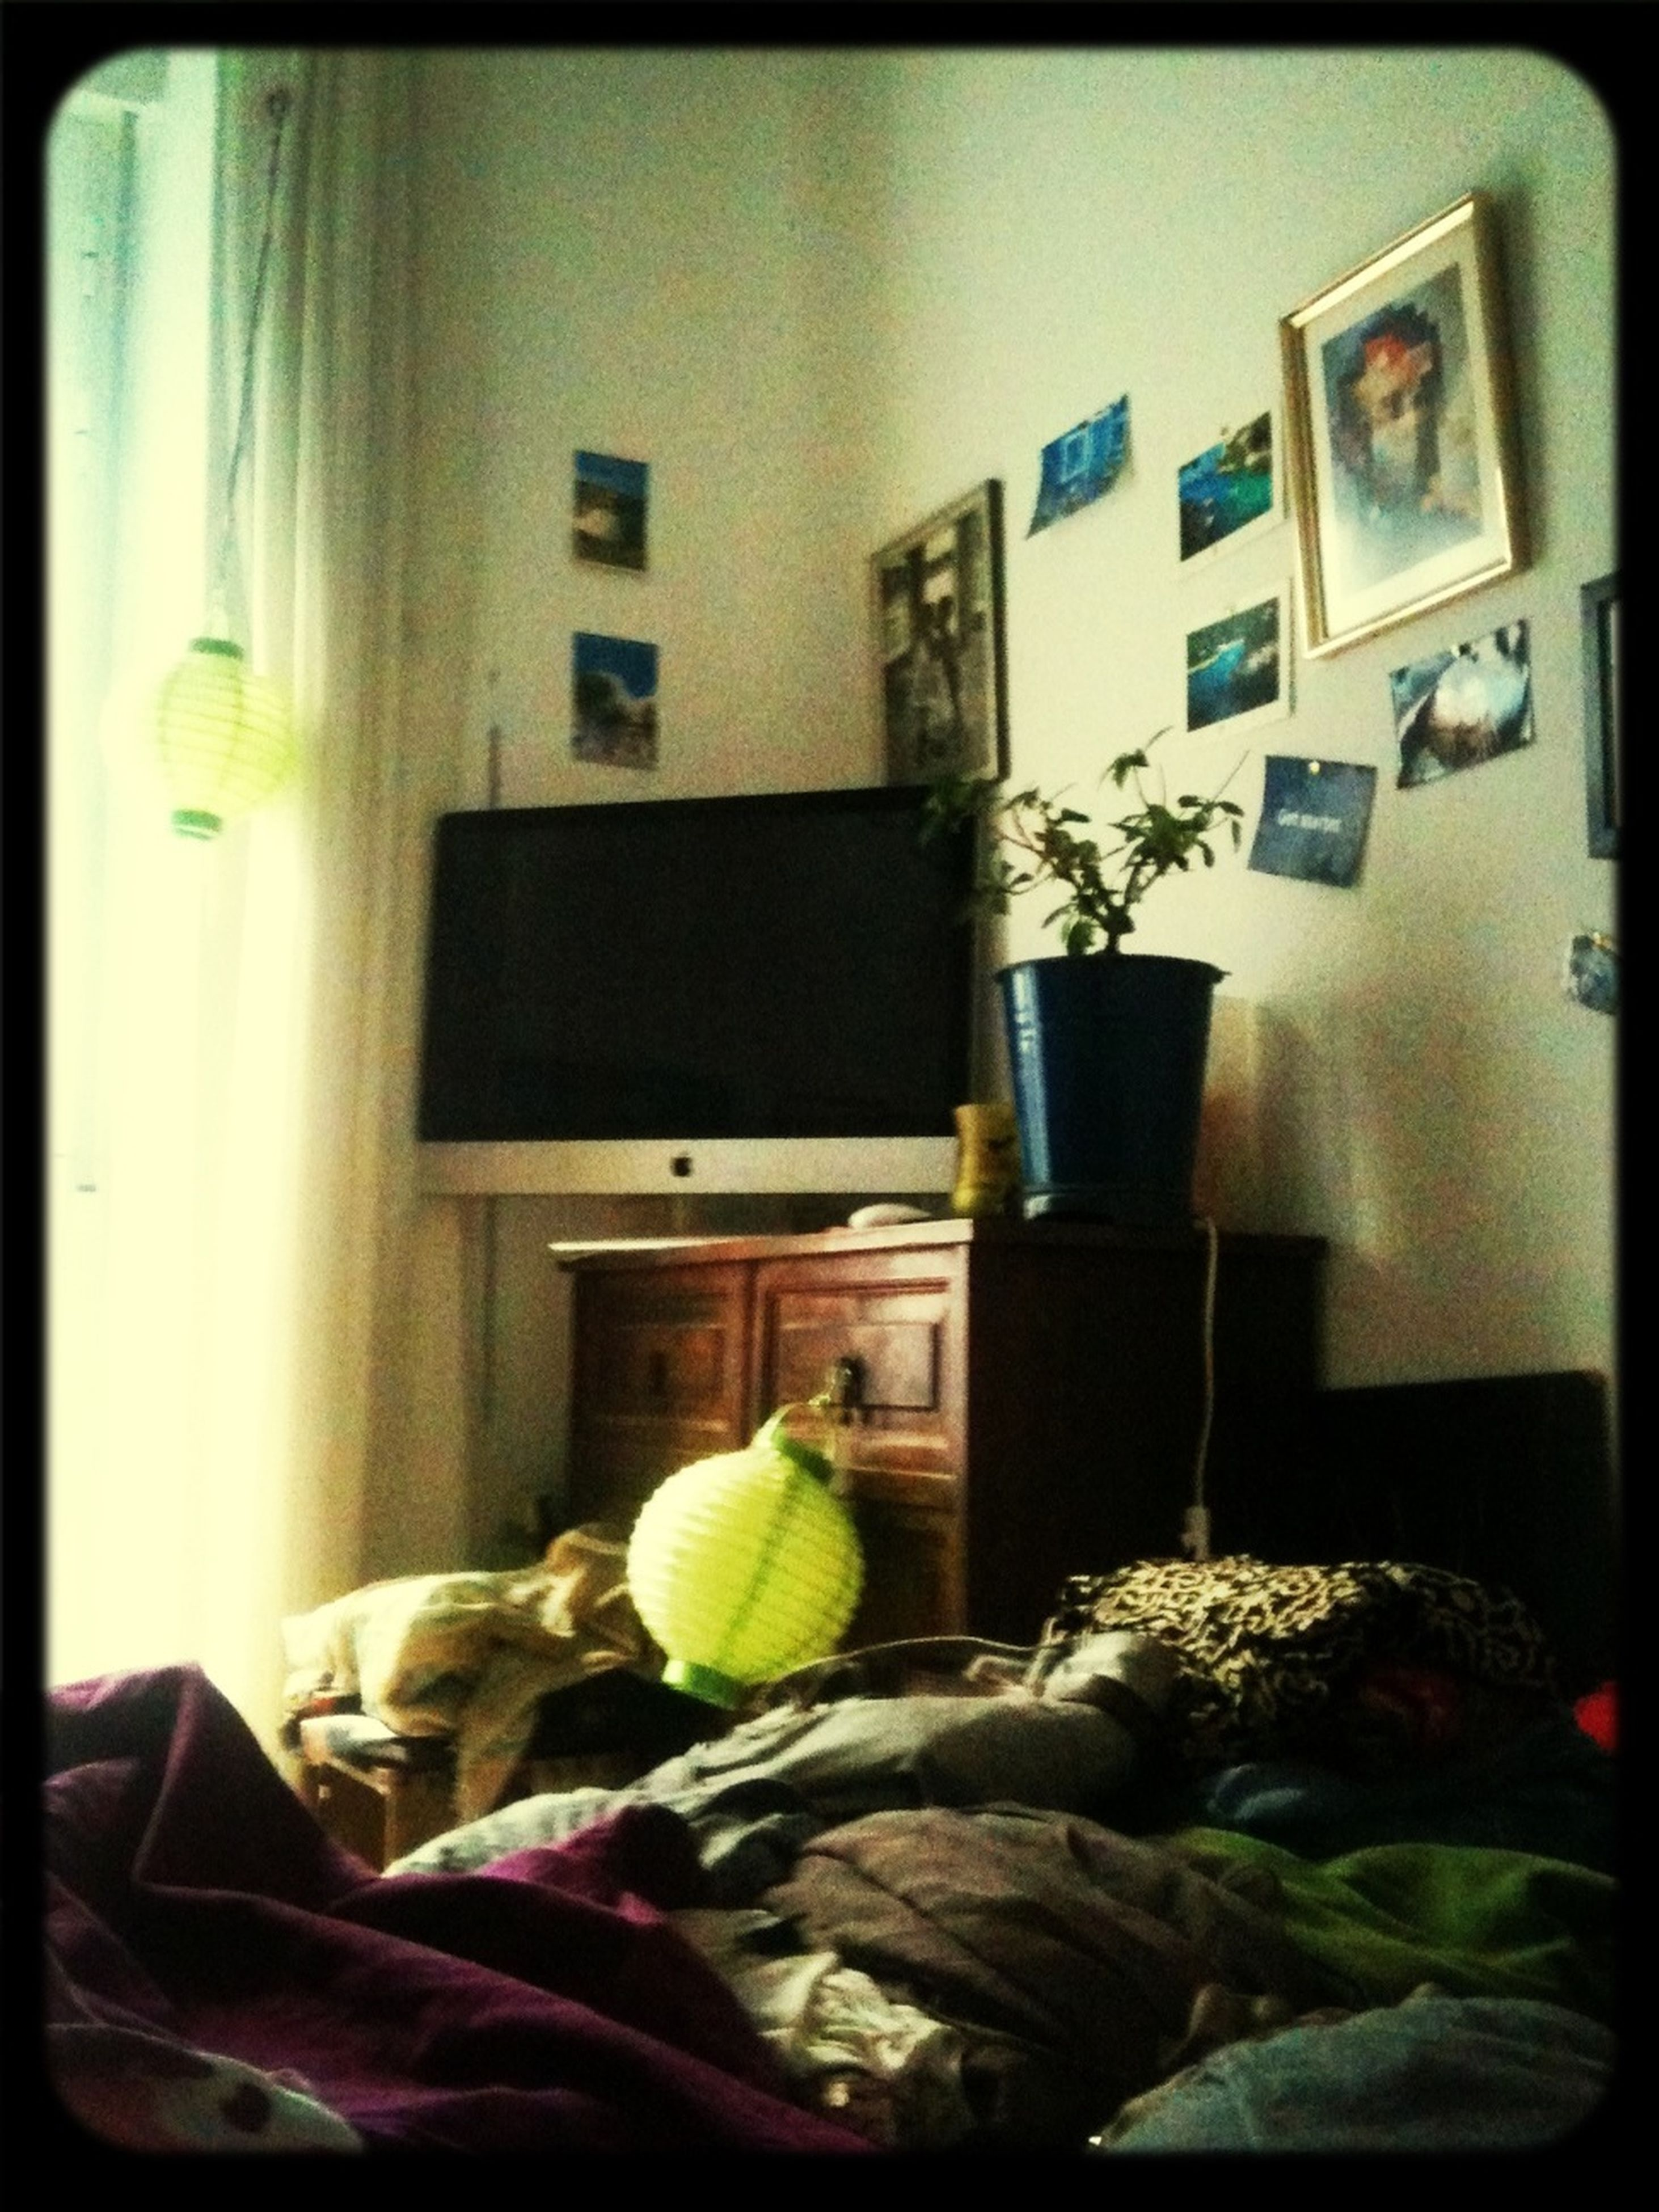 indoors, home interior, transfer print, auto post production filter, table, house, potted plant, window, chair, domestic room, built structure, architecture, home, no people, domestic life, still life, absence, sofa, day, living room